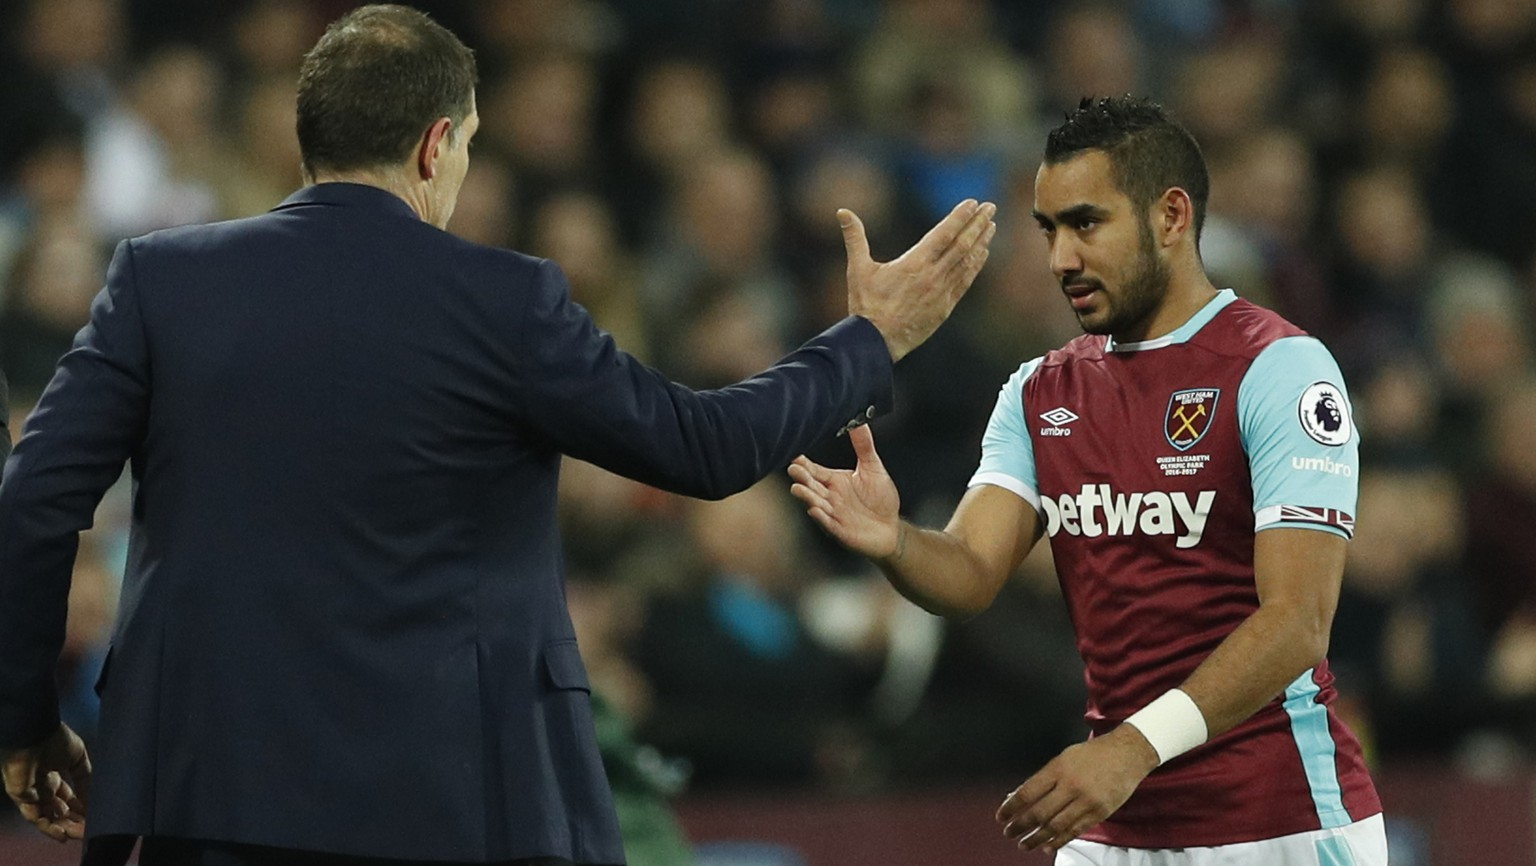 Britain Football Soccer - West Ham United v Manchester United - Premier League - London Stadium - 2/1/17 West Ham United's Dimitri Payet shakes the hand of West Ham United manager Slaven Bilic after he is substituted off  Action Images via Reuters / John Sibley Livepic EDITORIAL USE ONLY. No use with unauthorized audio, video, data, fixture lists, club/league logos or